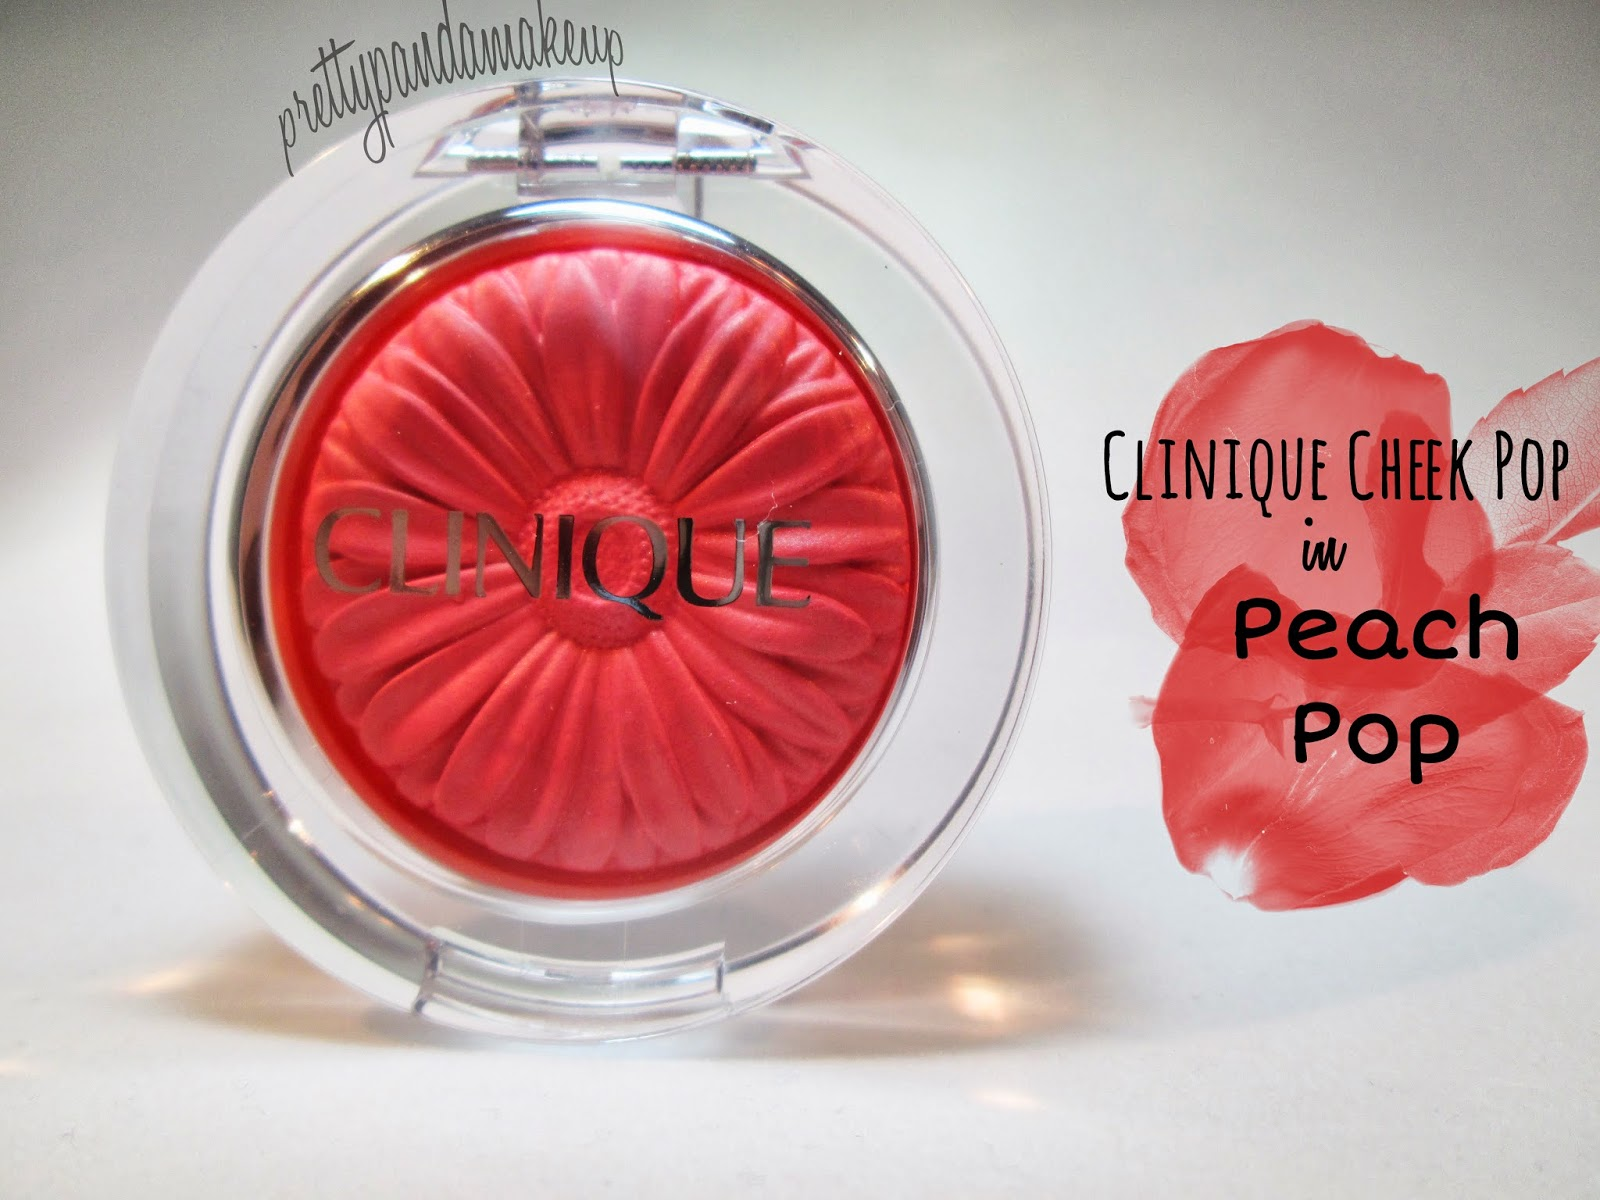 Clinique Cheek Pop in Peach Pop